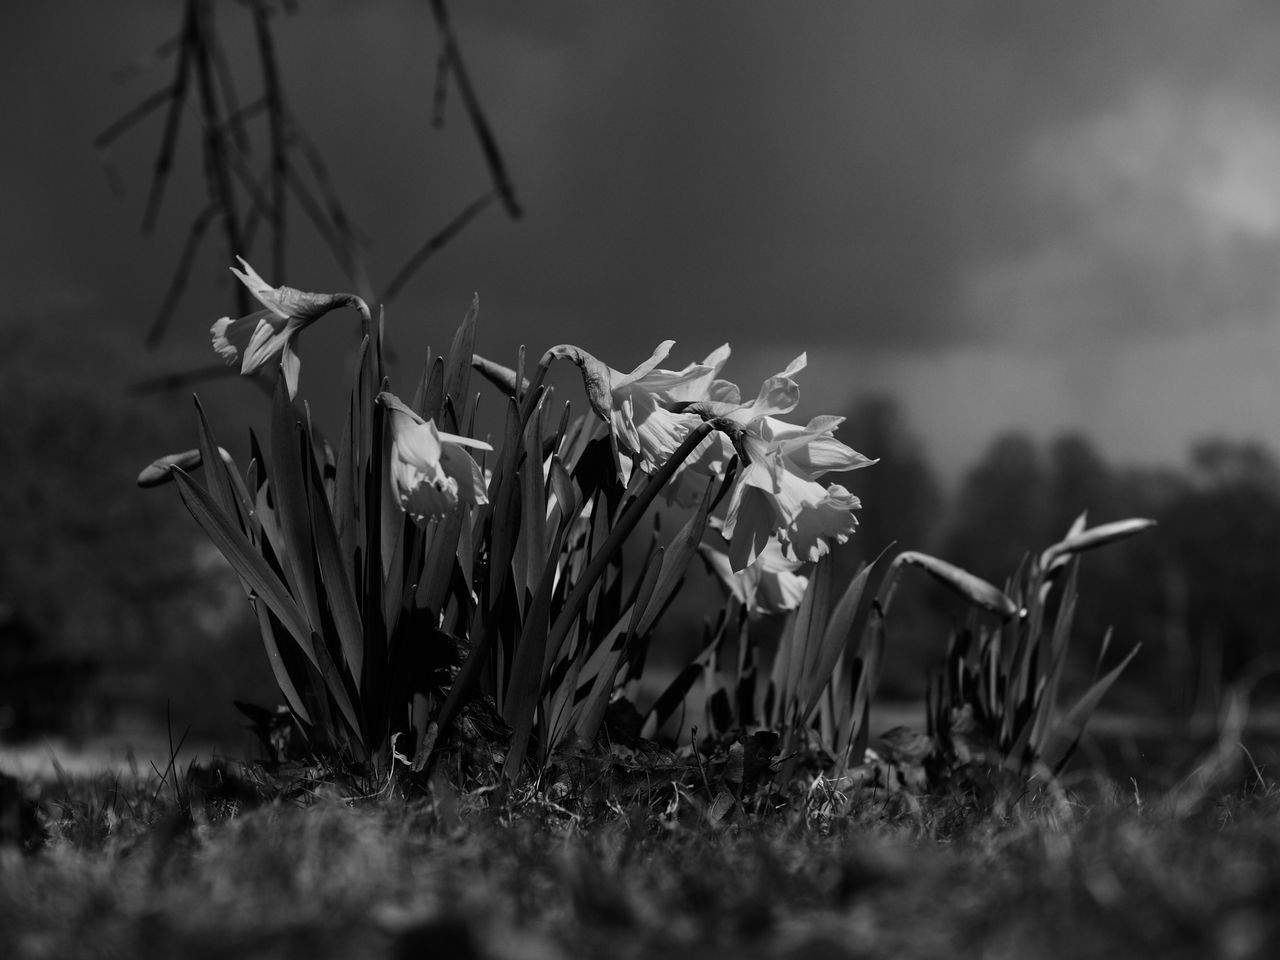 Daffodils? ☺ Flower Growth Plant Beauty In Nature Nature Petal No People Grass Field Flower Head Fragility Snowdrop Day Outdoors Freshness Blooming Close-up Lilies Black & White Black And White Monochrome Shallow Depth Of Field